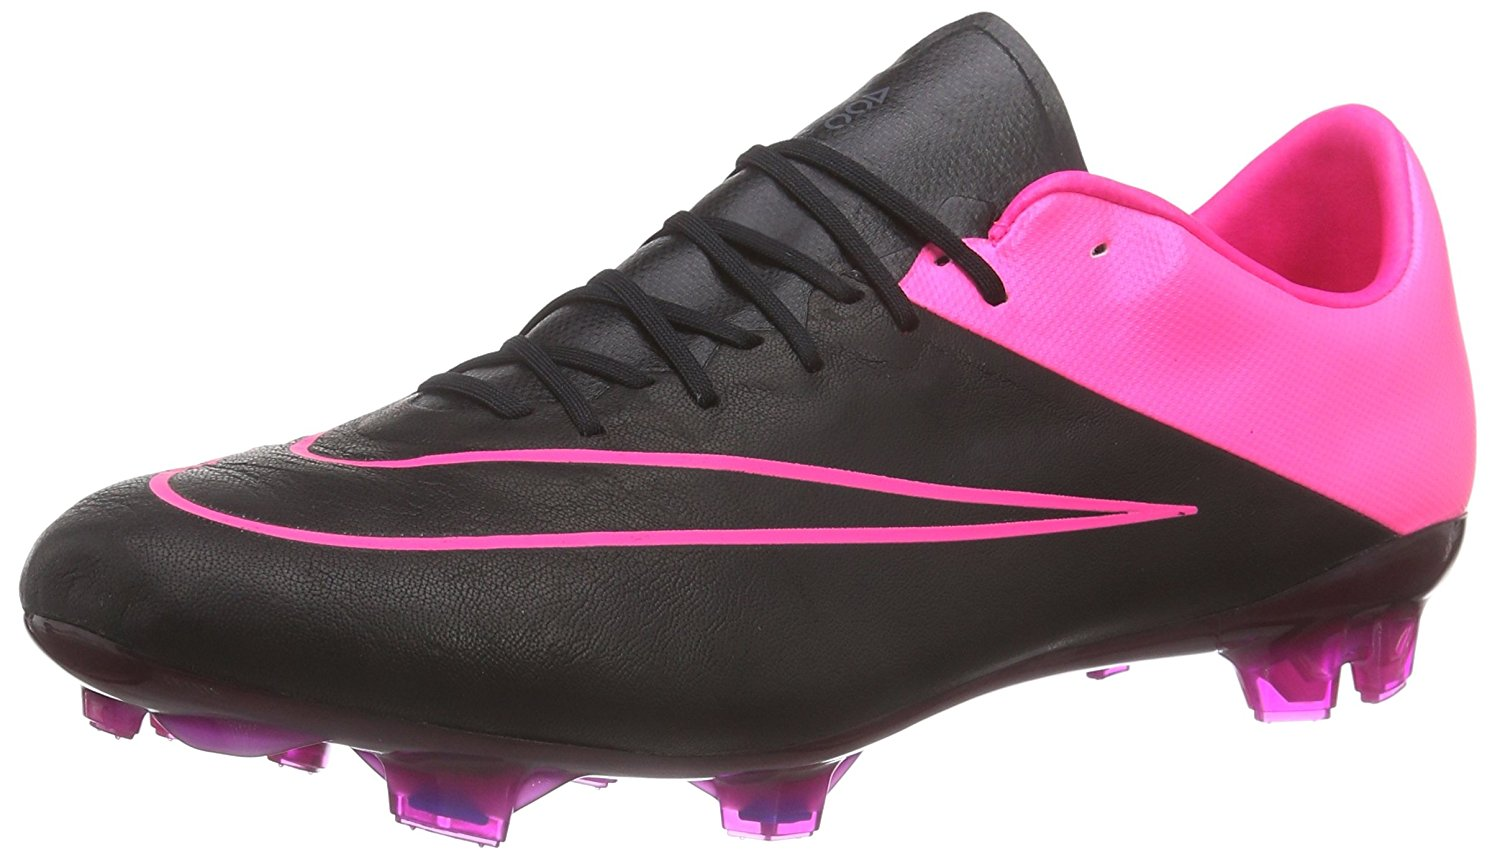 e99cf4f2431 Get Quotations · Nike Mercurial Vapor X Leather FG Men s Firm-Ground Soccer  Cleat